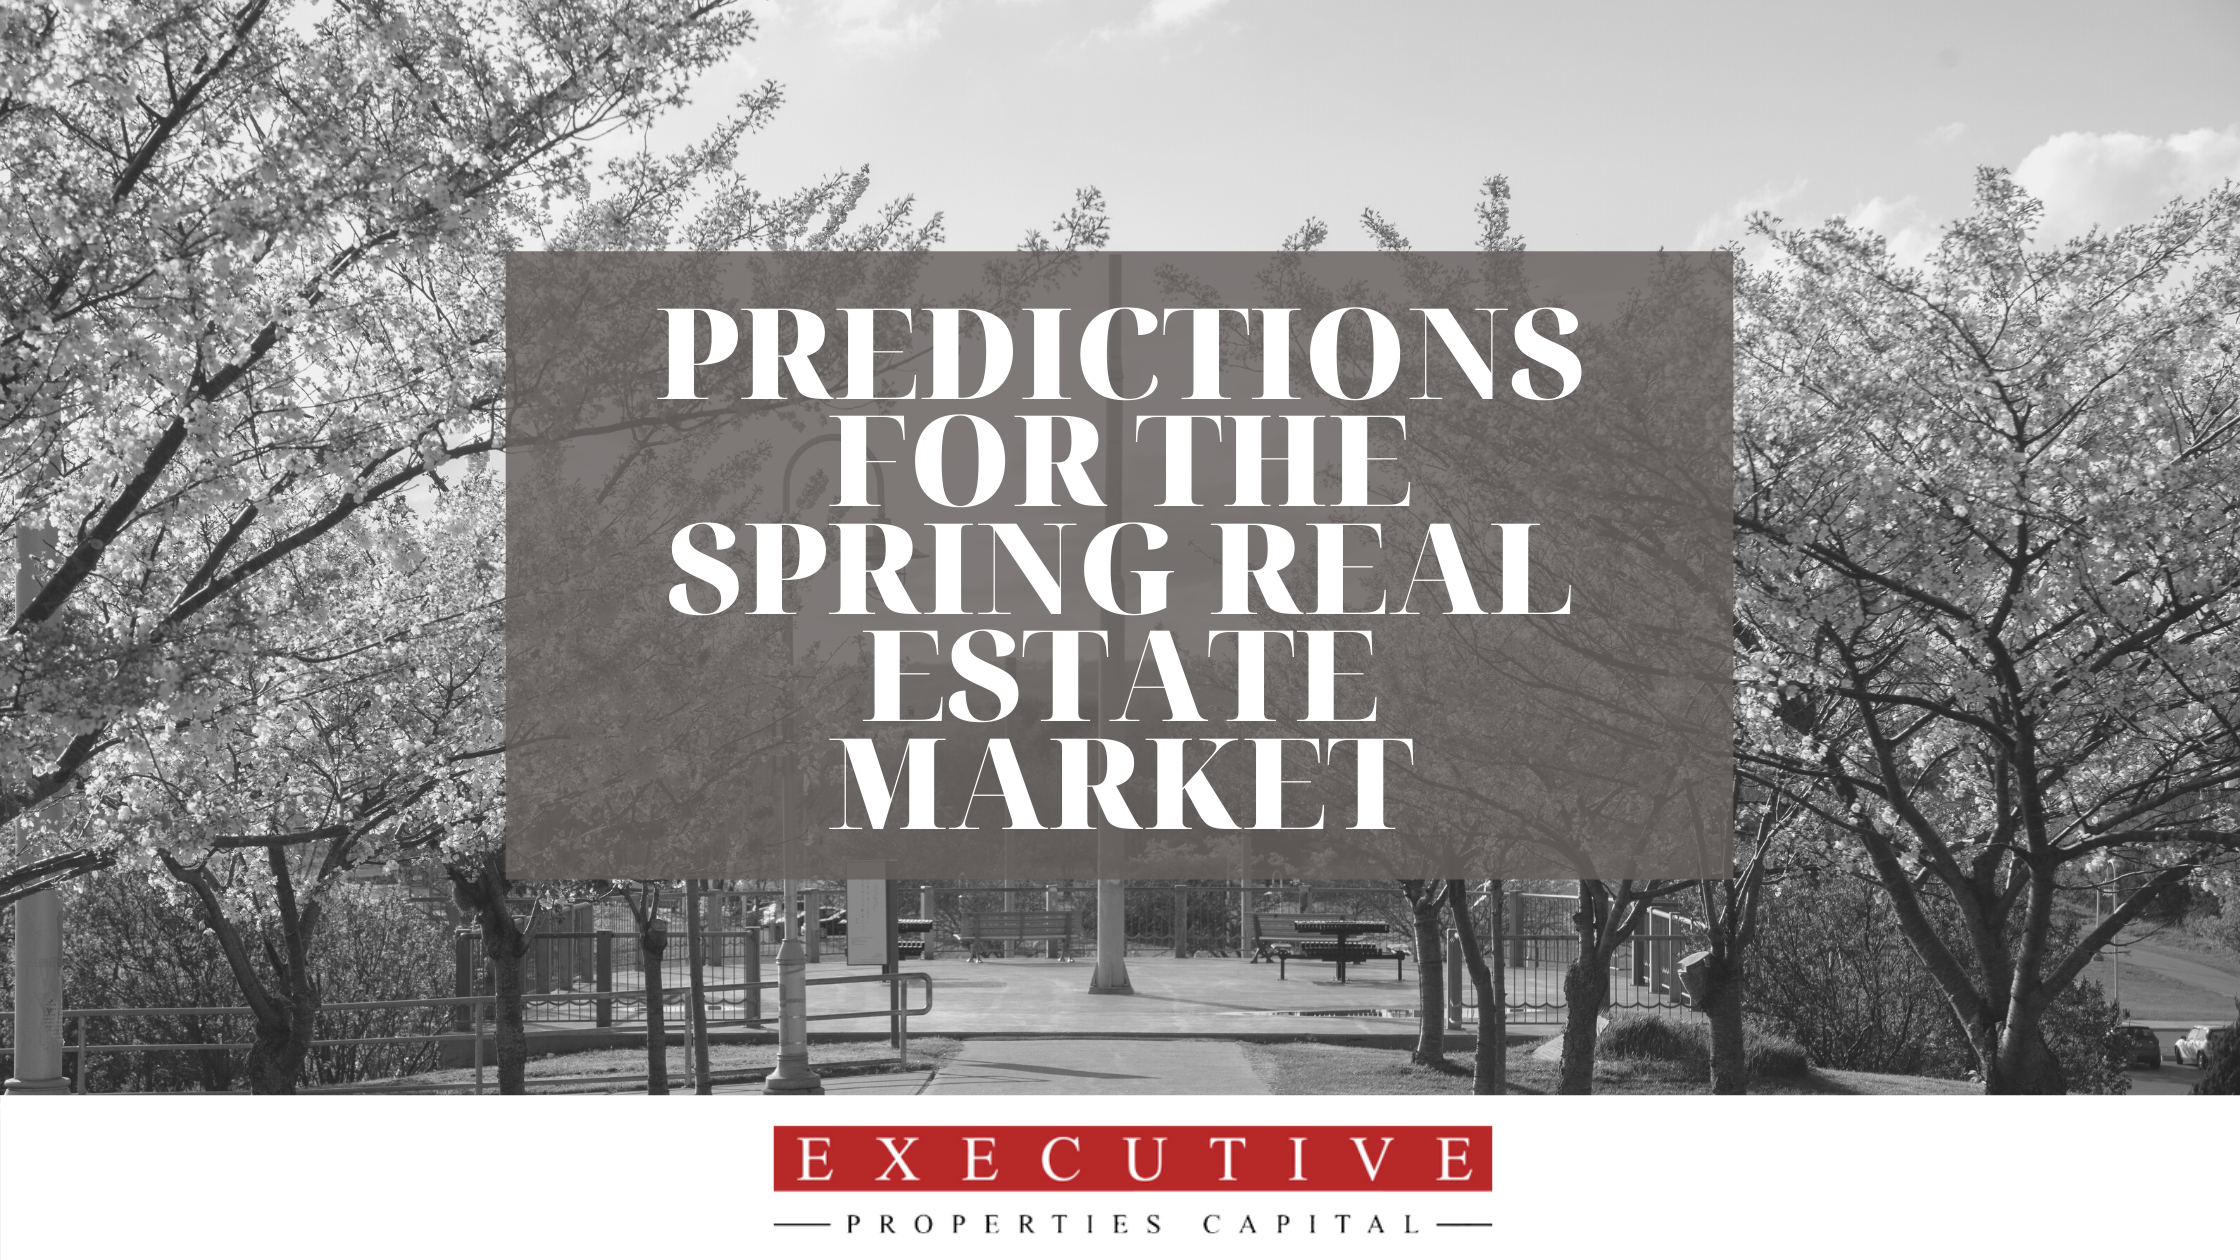 Predictions for the Spring Real Estate Market